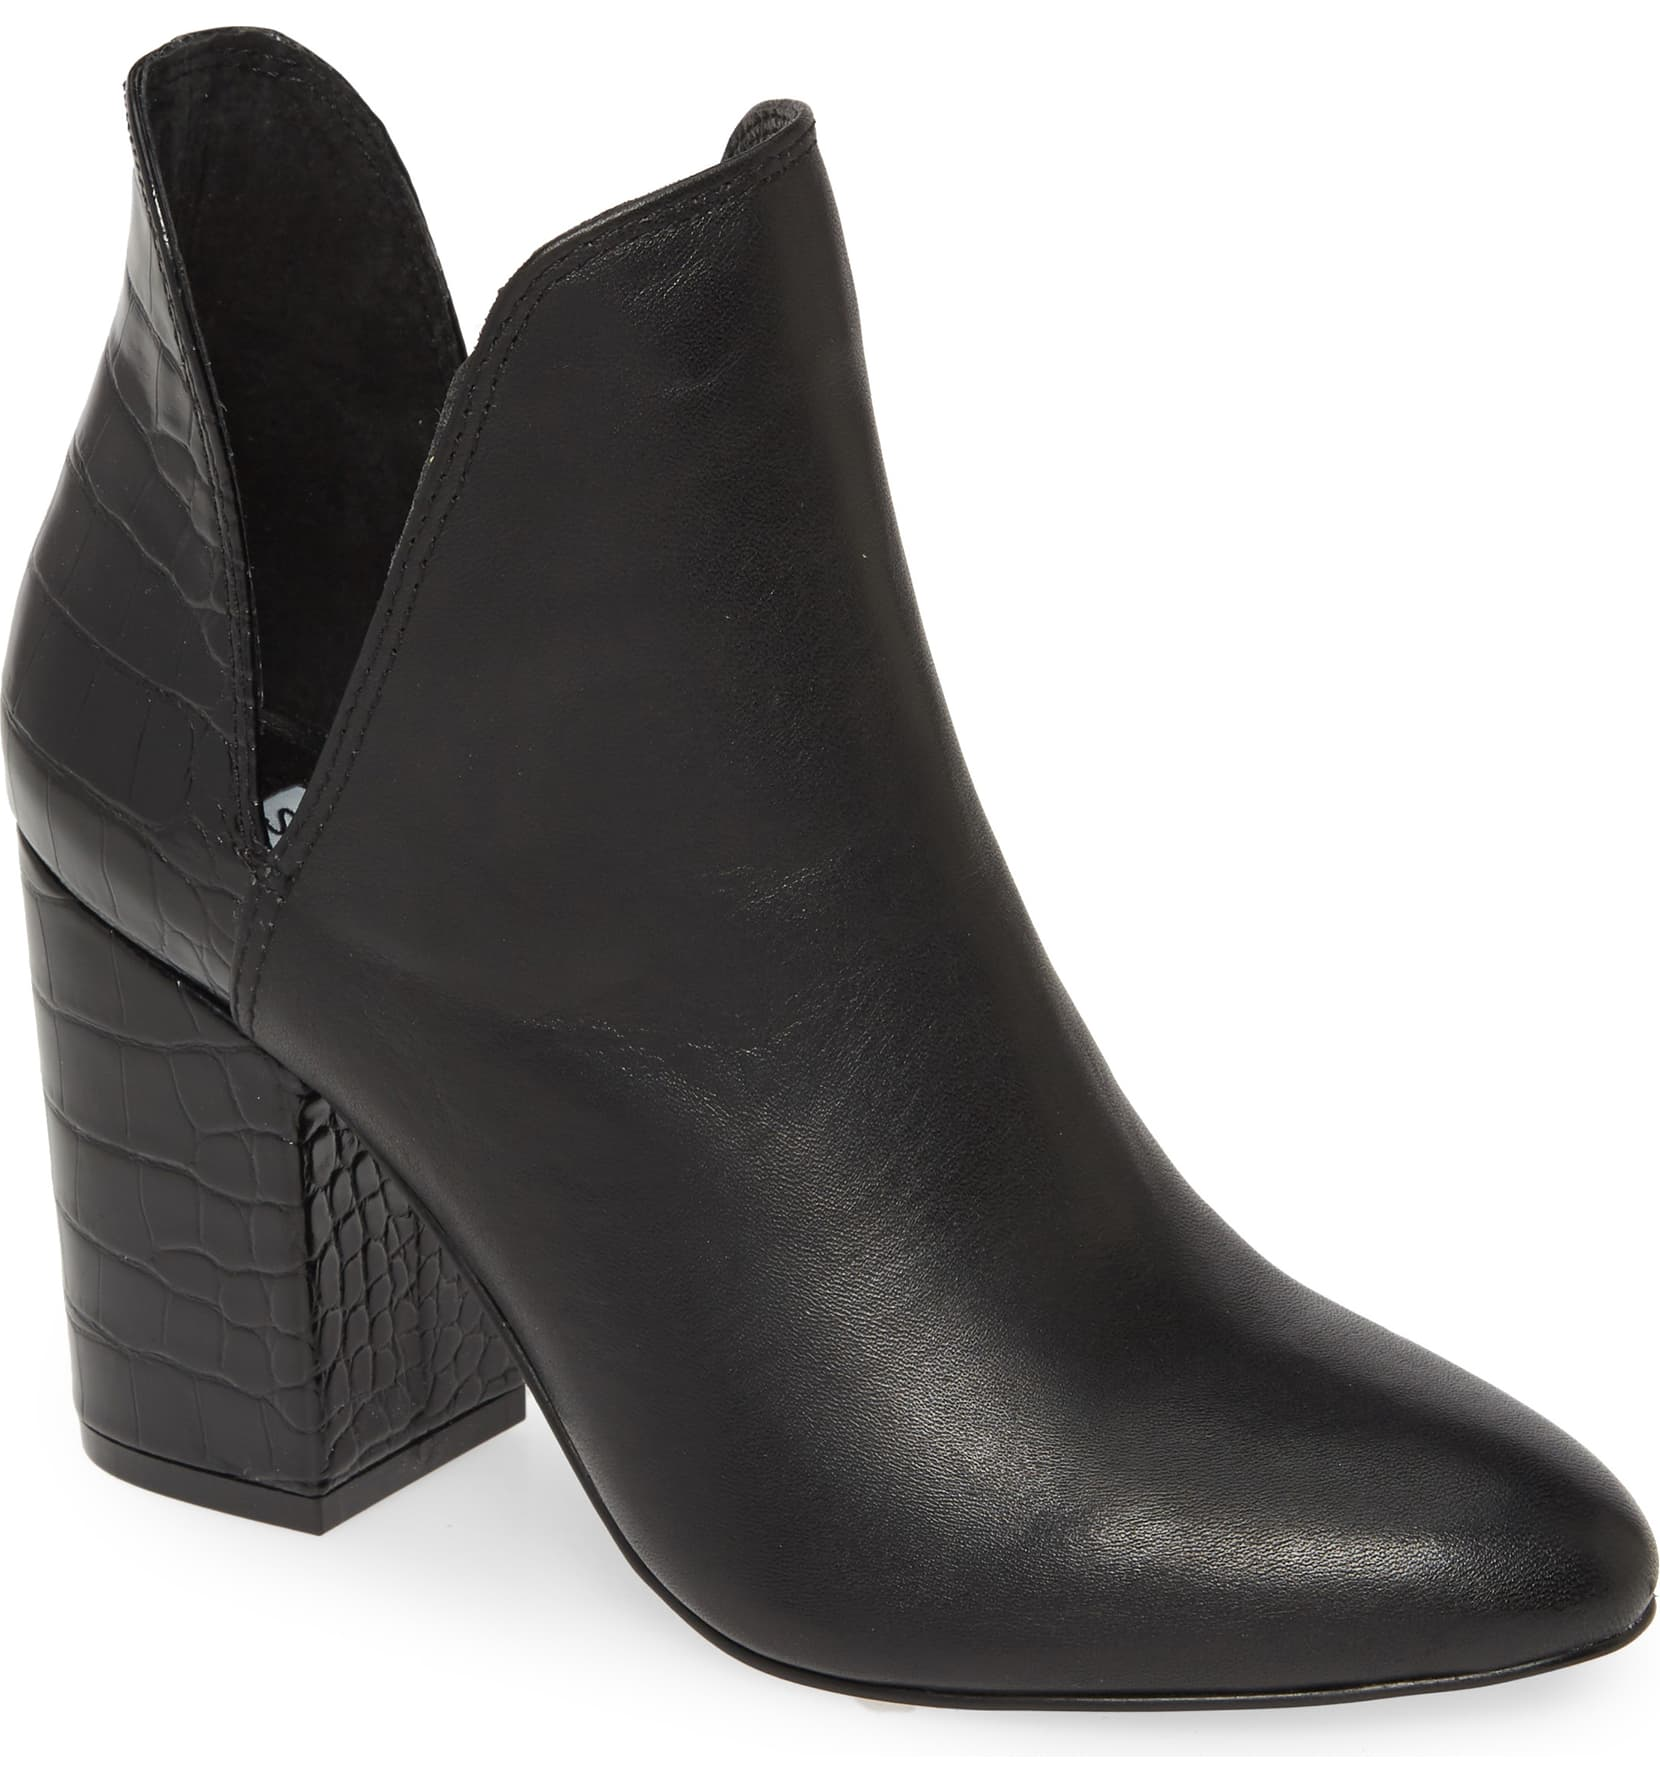 "<p>A dramatic, ankle-framing cut and a simple and sturdy heel create a striking silhouette for this leather bootie with classic-to-street-style versatility.{&nbsp;}<a  href=""https://shop.nordstrom.com/s/steve-madden-rookie-bootie-women/5192518/full?origin=category-personalizedsort&breadcrumb=Home%2FWomen%2FTopshop%20%26%20Trend&color=black%20multi"" target=""_blank"" title=""https://shop.nordstrom.com/s/steve-madden-rookie-bootie-women/5192518/full?origin=category-personalizedsort&breadcrumb=Home%2FWomen%2FTopshop%20%26%20Trend&color=black%20multi"">Shop it{&nbsp;}</a>-{&nbsp;}$101.95. (Image: Nordstrom){&nbsp;}</p>"